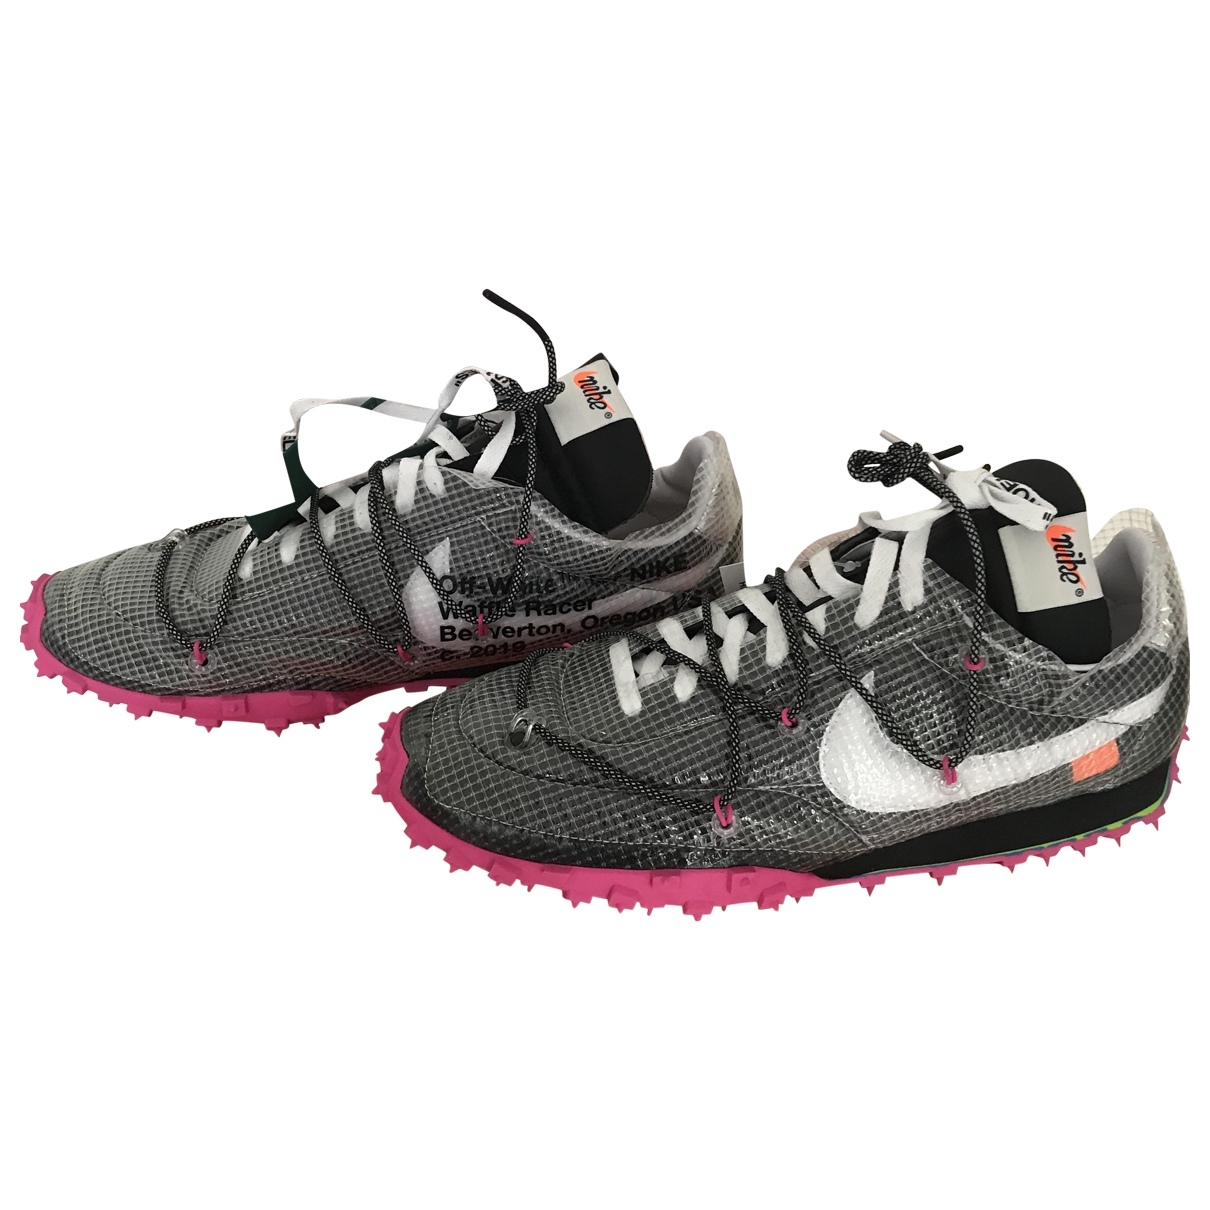 Nike X Off-white Waffle Racer Black Trainers for Men 47 EU